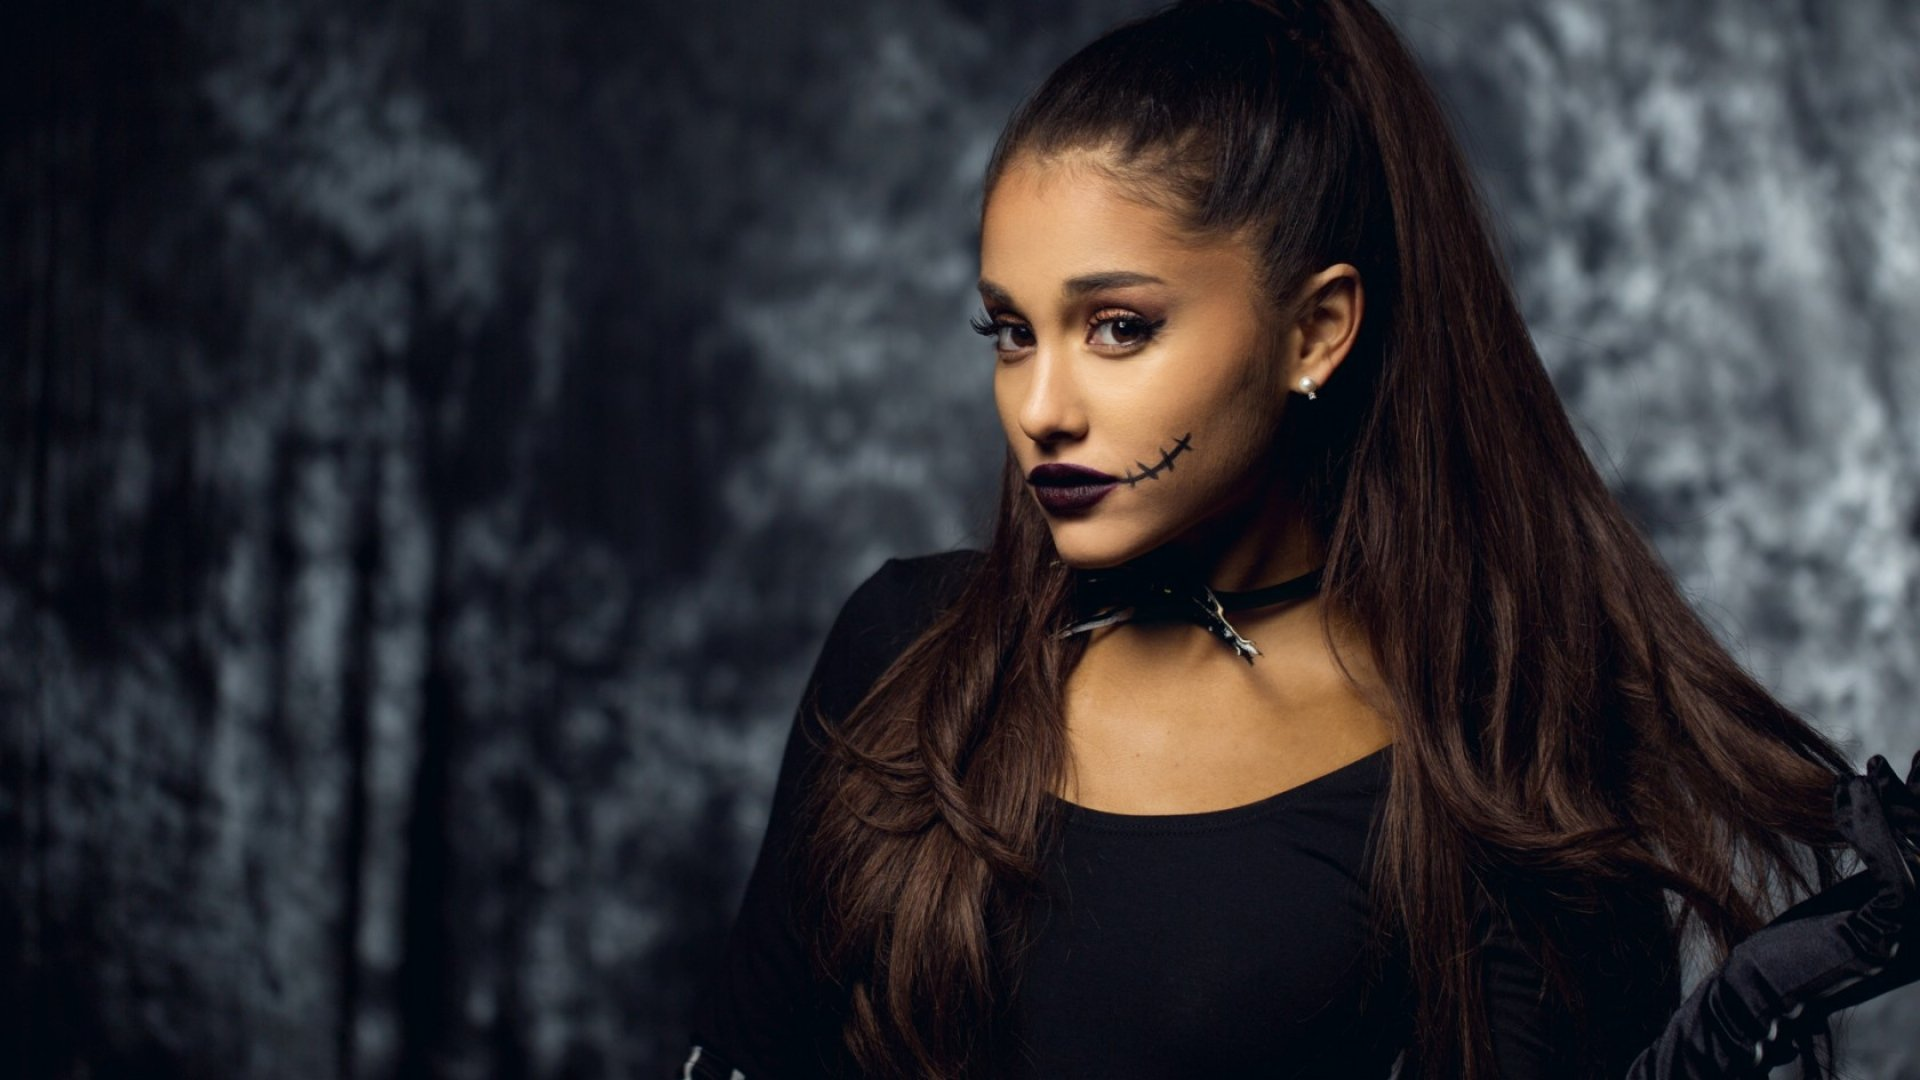 Ariana Grande scary makeup wallpaper 1920x1080